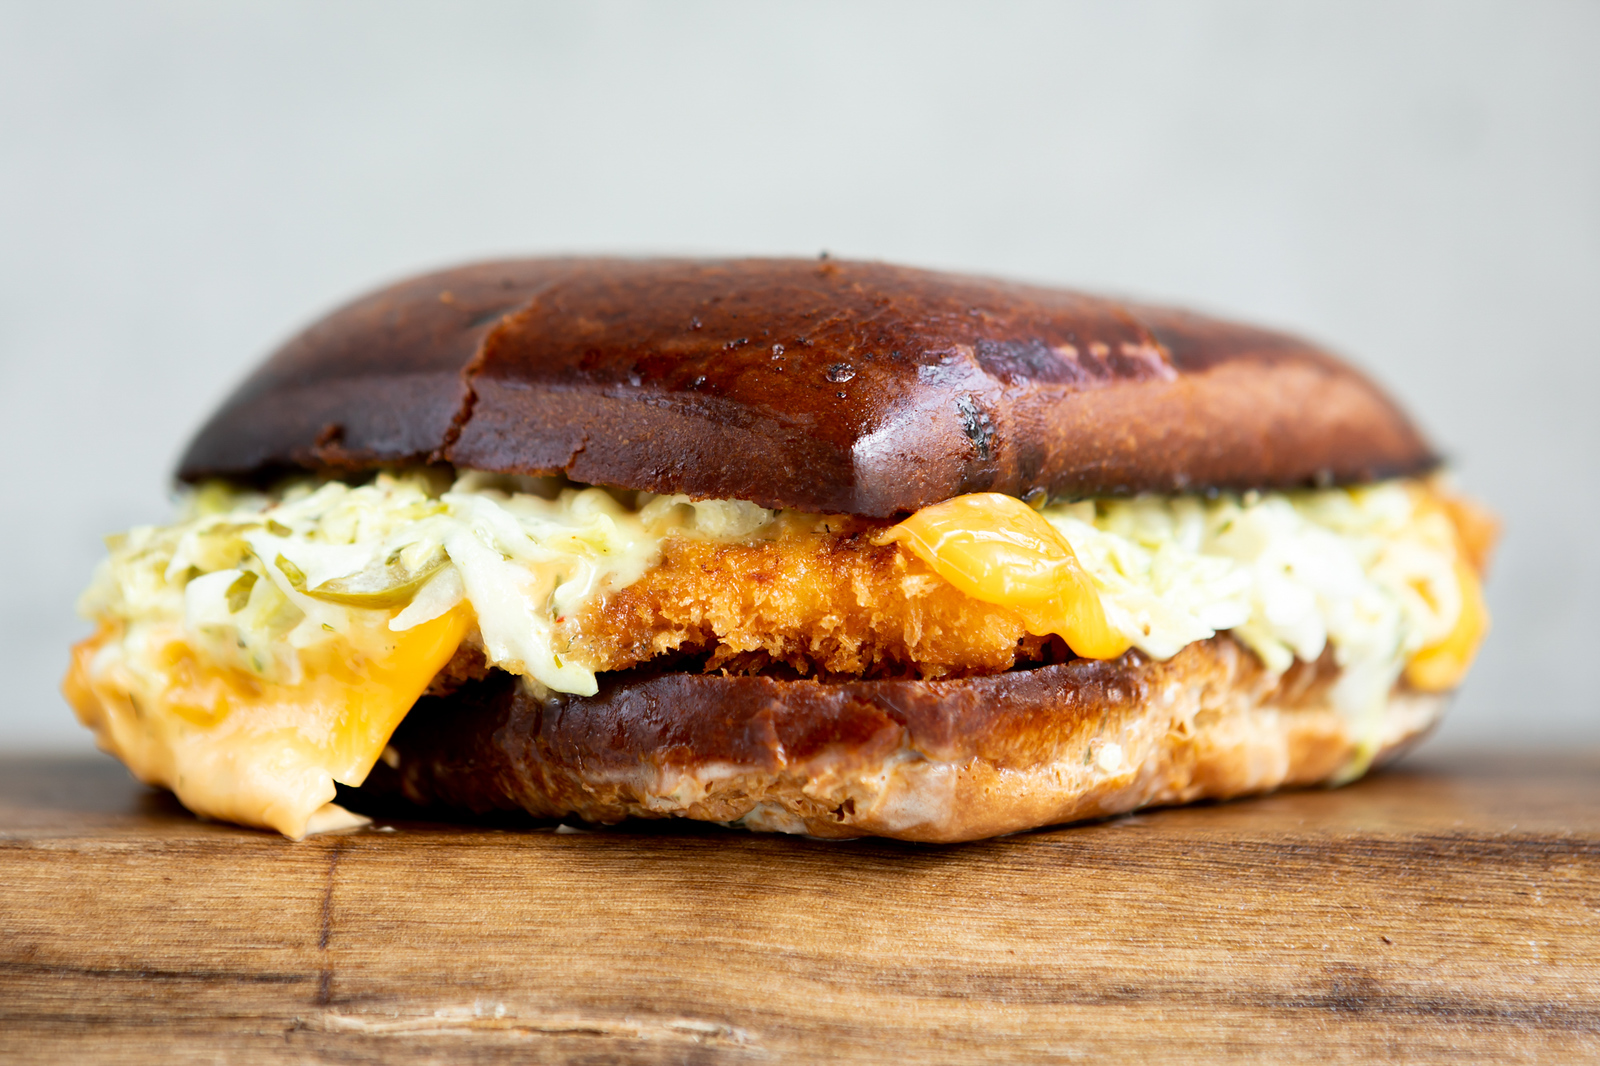 Fried fish sandwich on a square bun, with slaw and melted American cheese spilling out the side